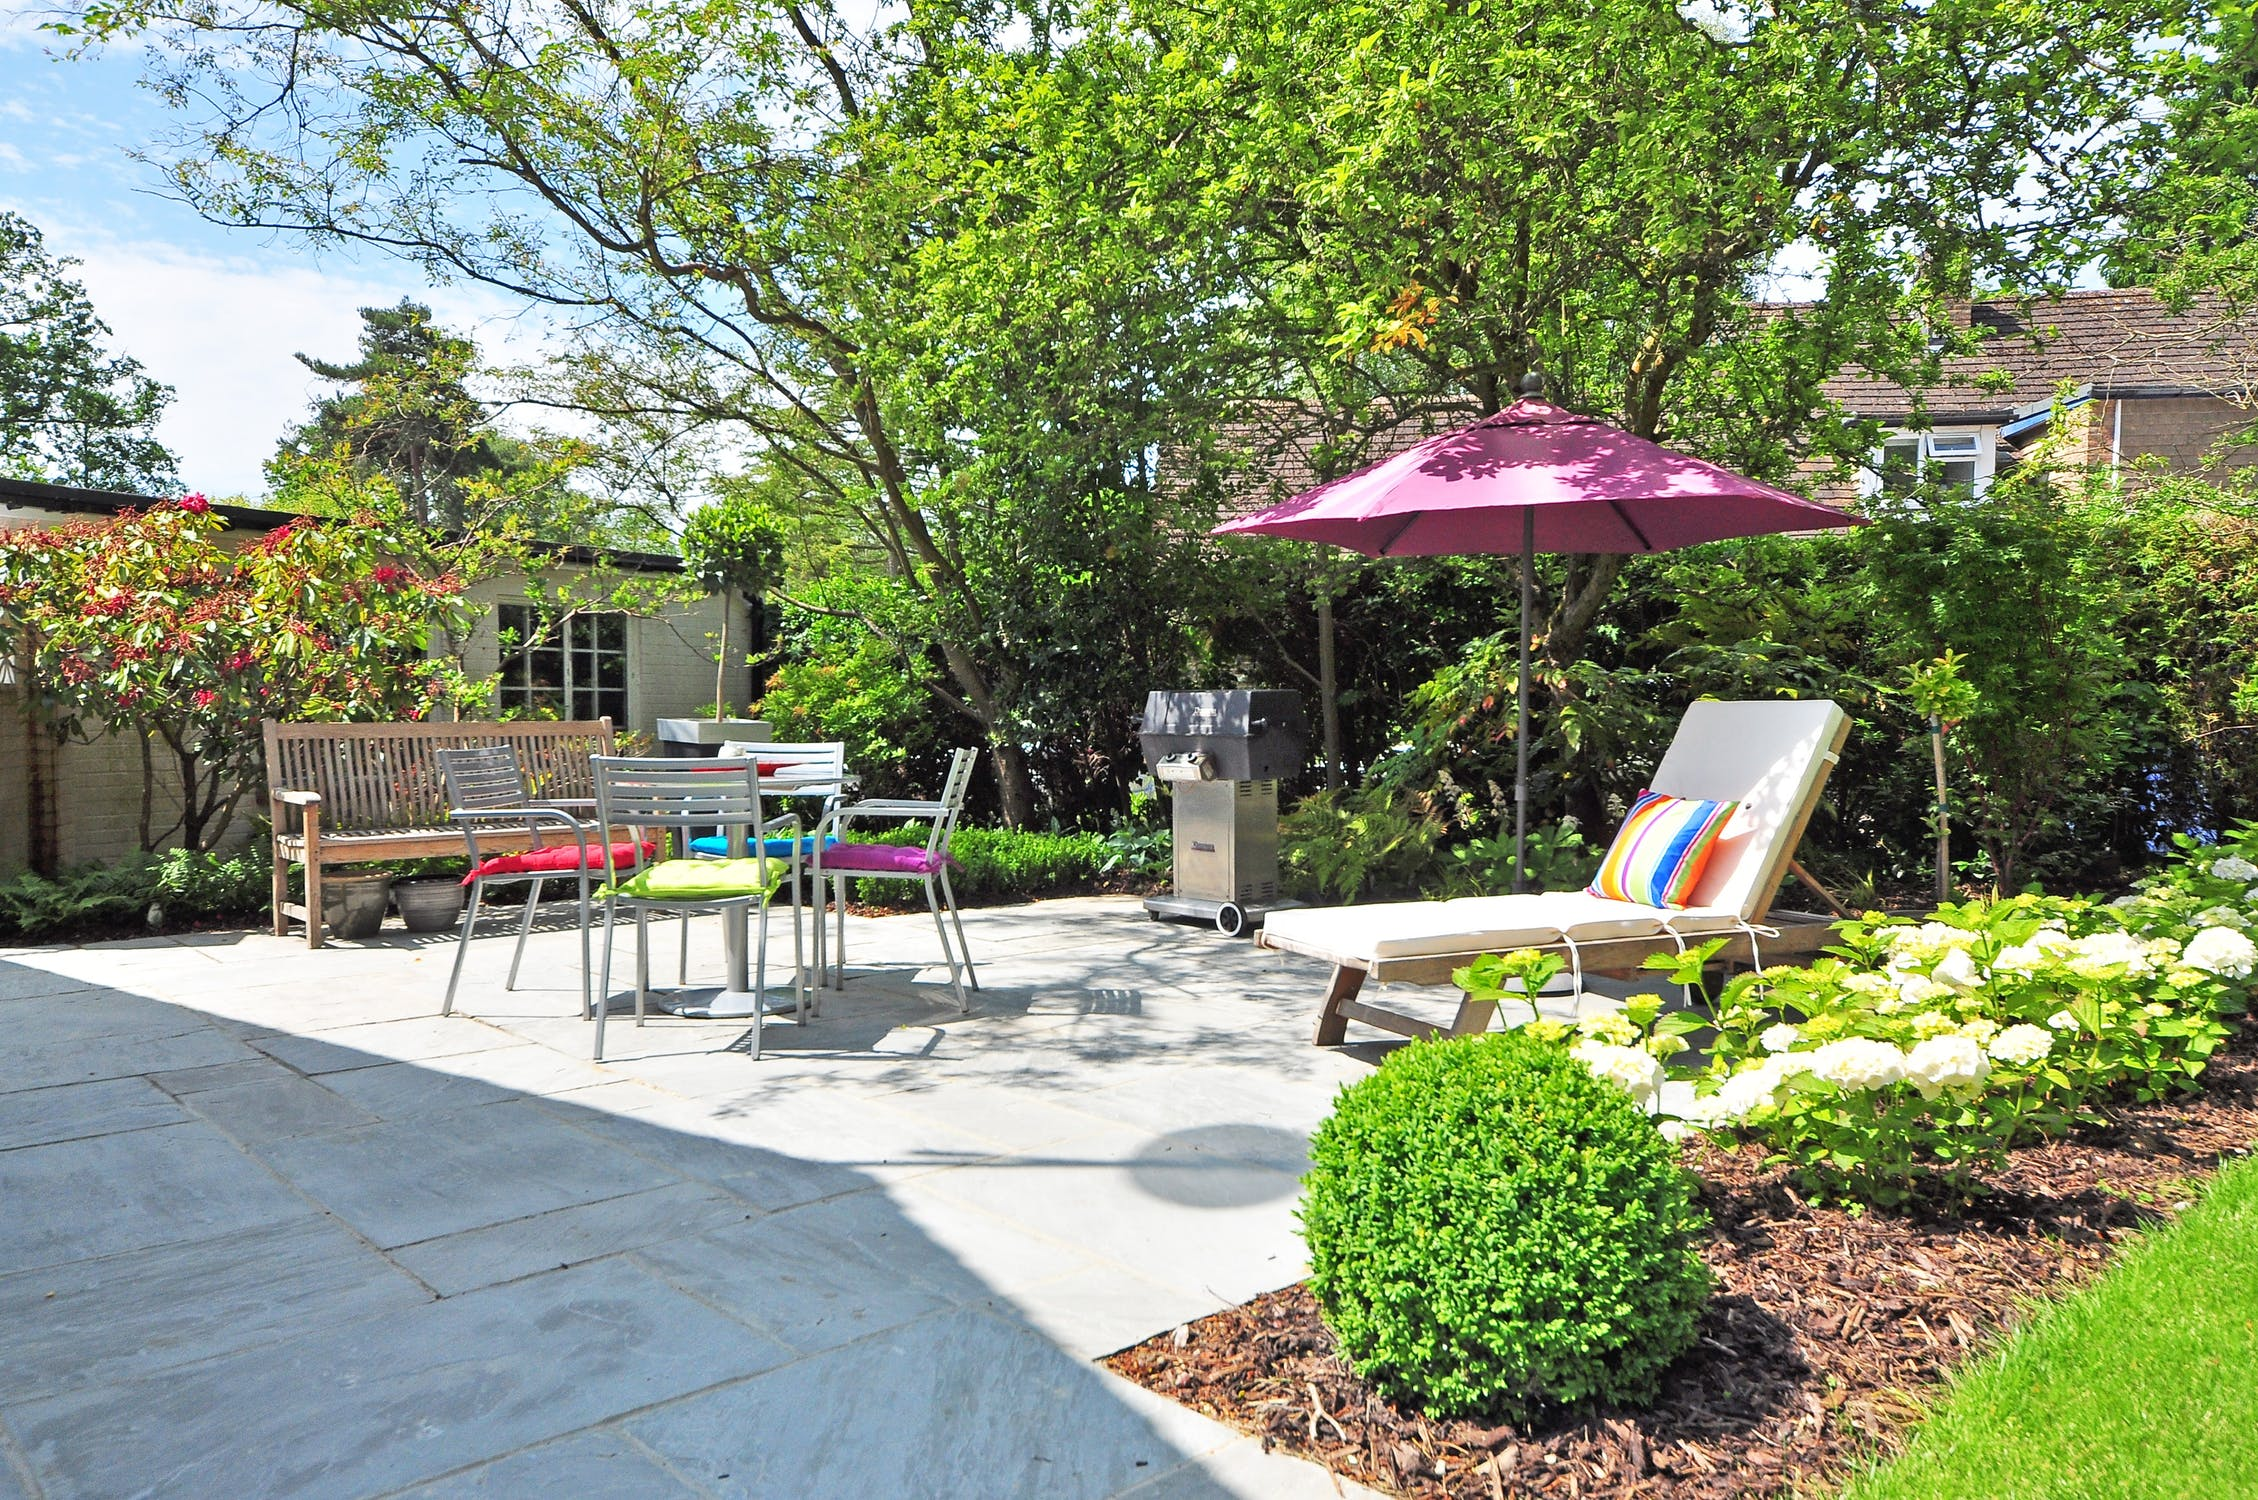 Garden landscaping - outdoor recreation area with shrubs, flowers and paving